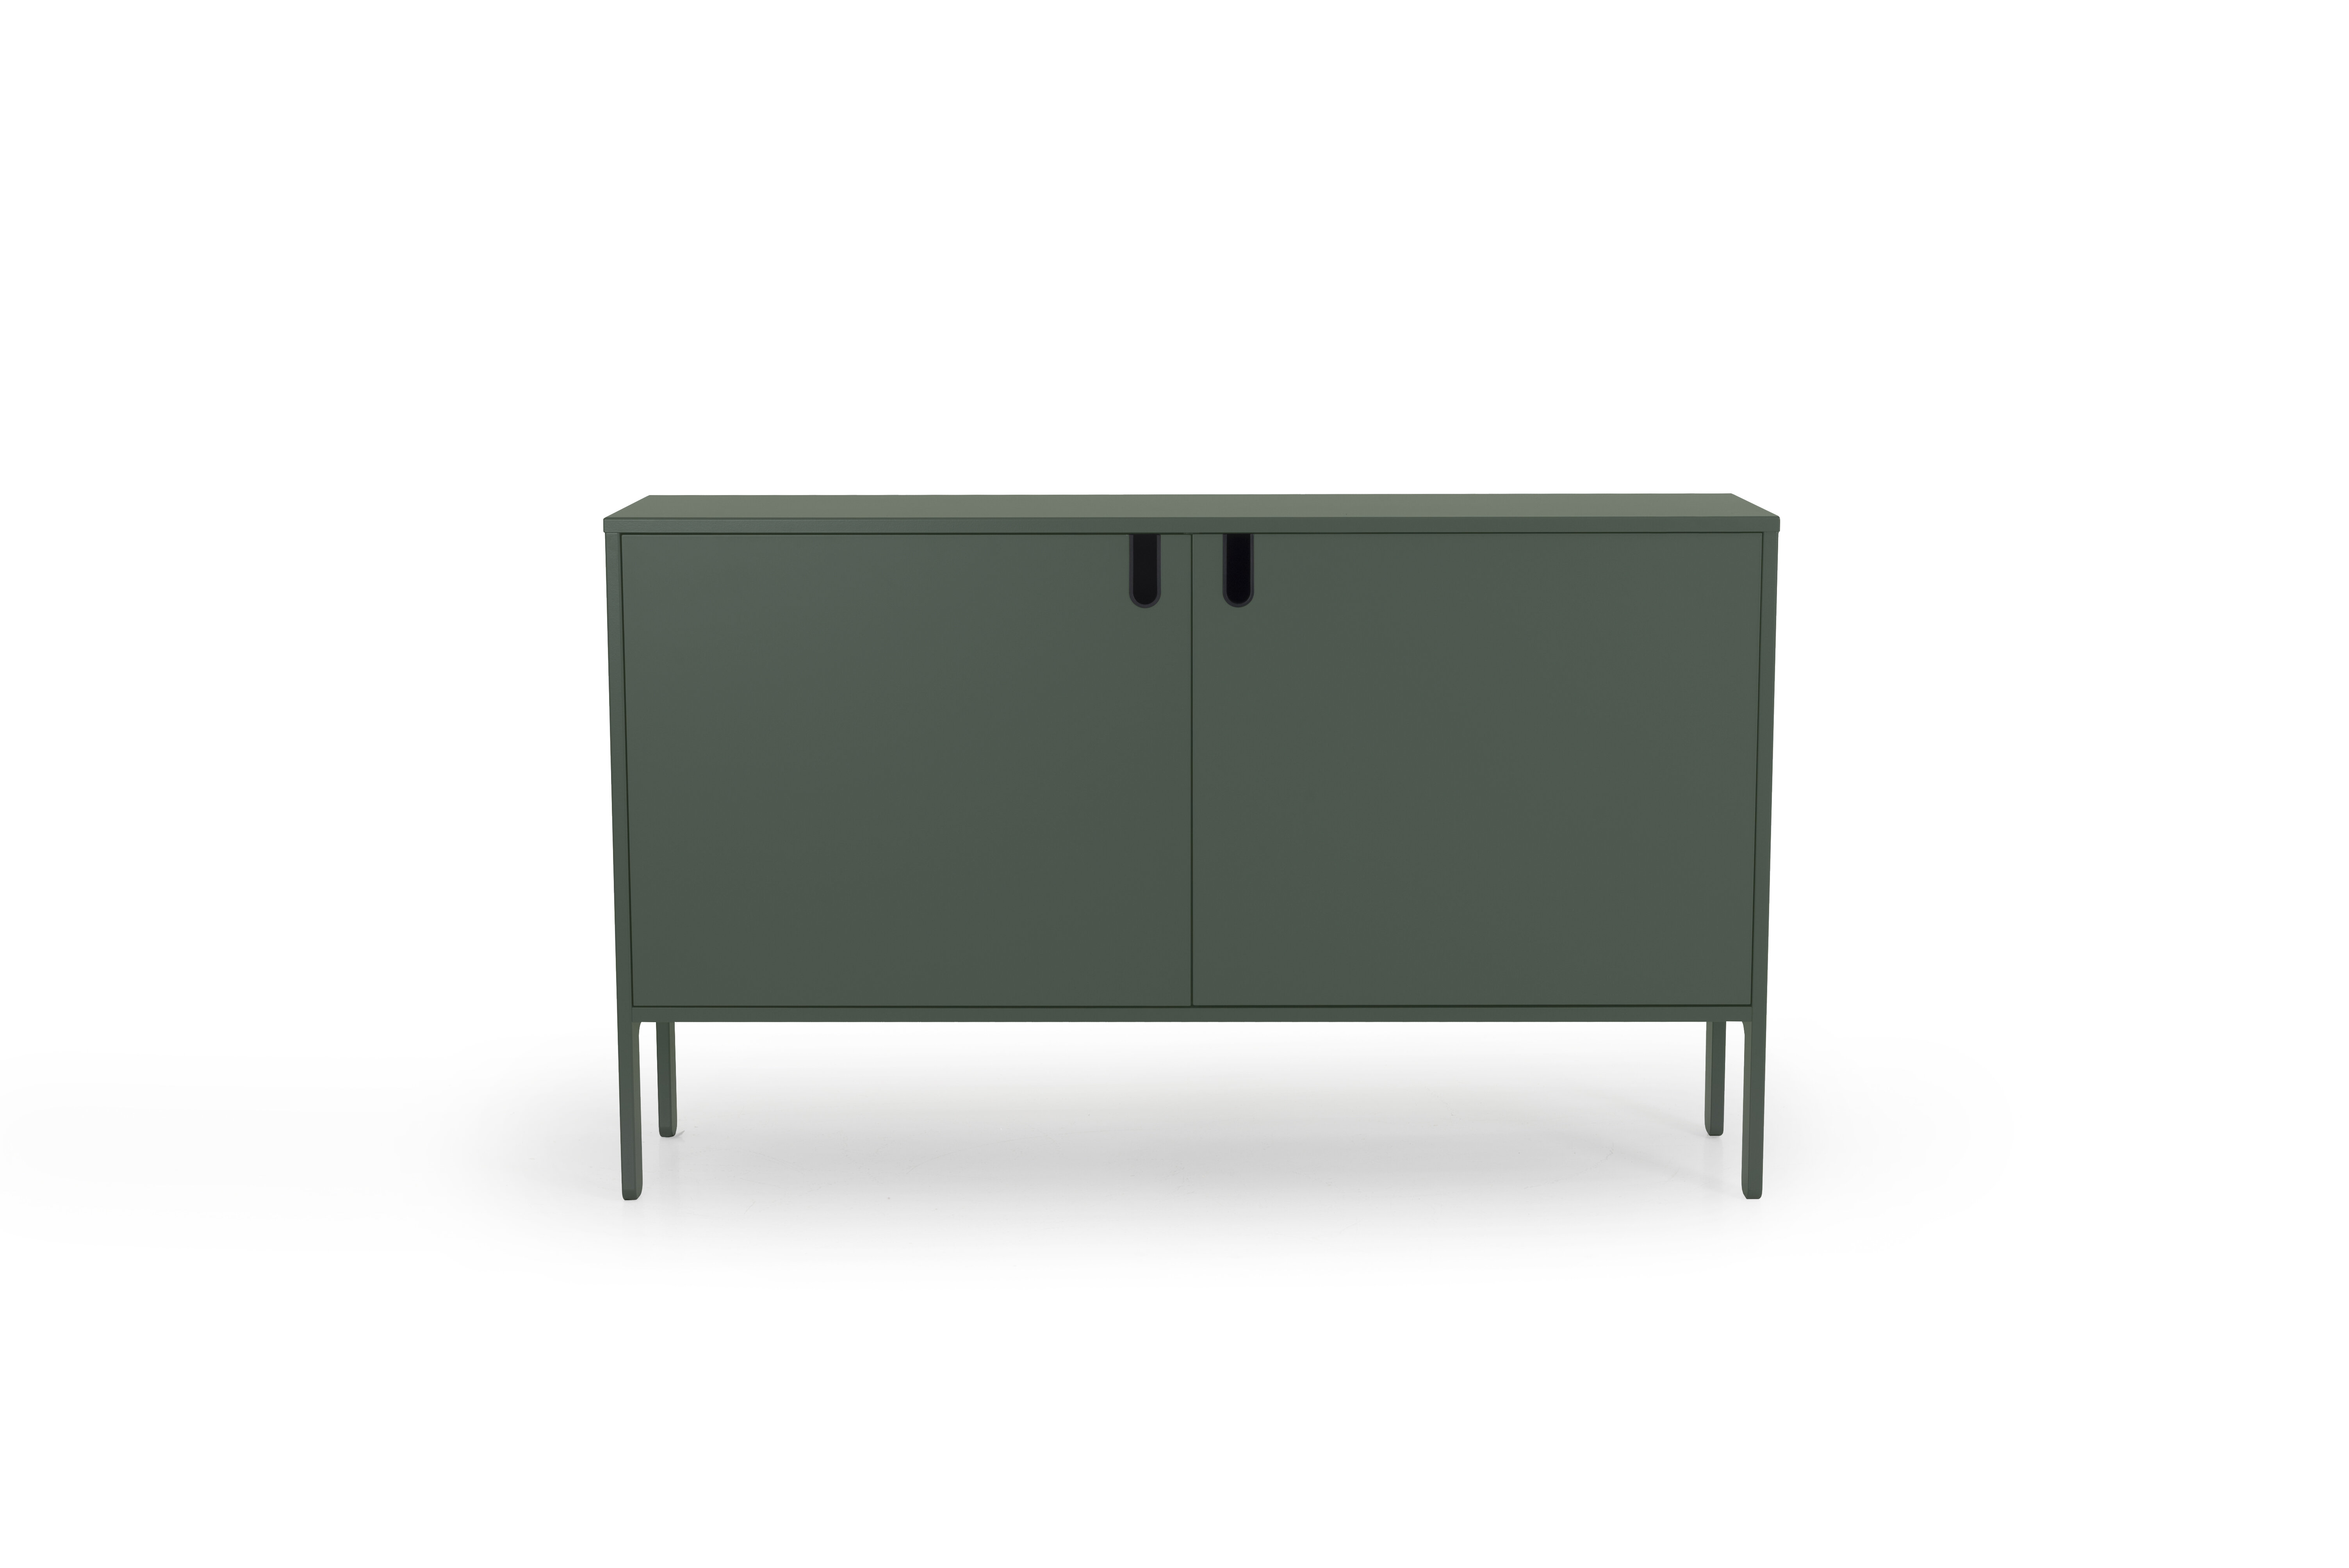 Tenzo Uno Sideboard Wayfair Co Uk